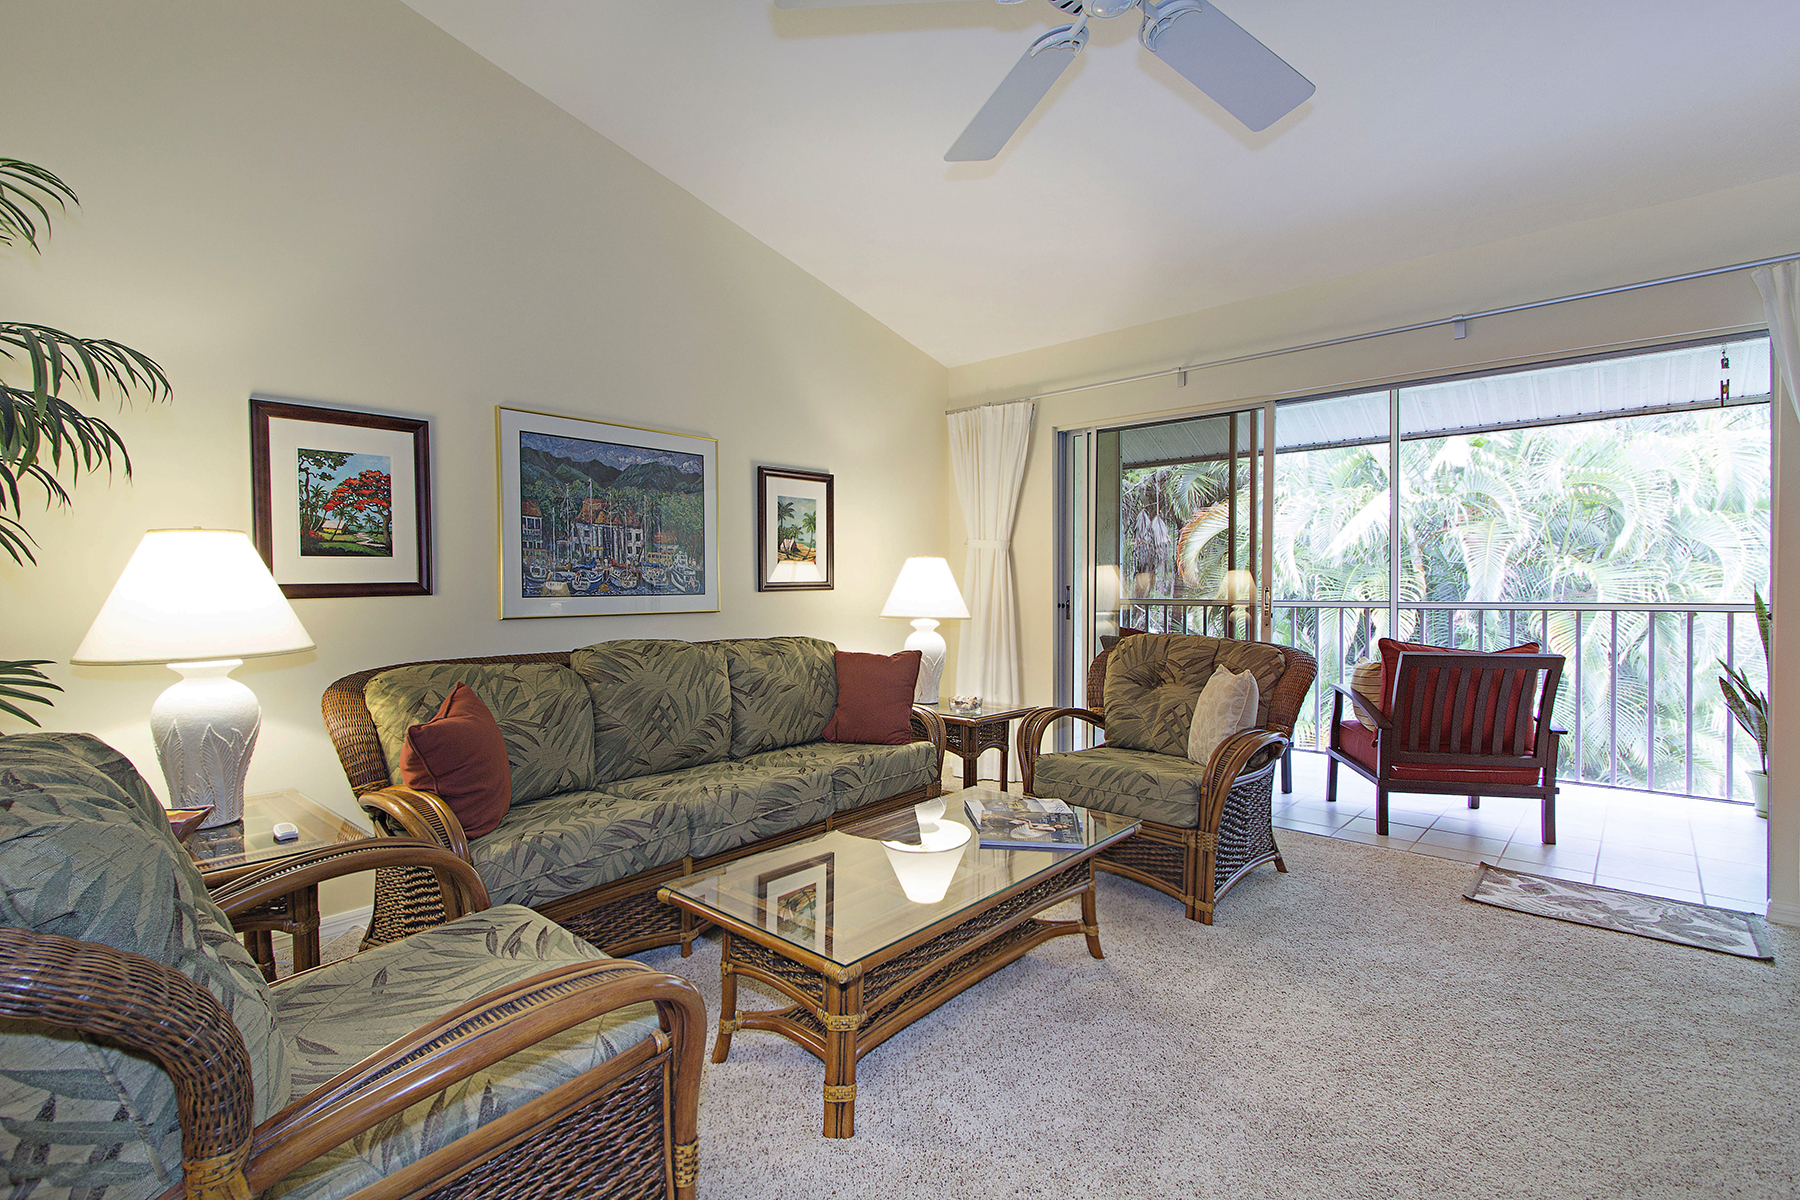 Condominium for Sale at WOODMERE RACQUET CLUB 3531 County Barn Rd C202, Naples, Florida 34112 United States